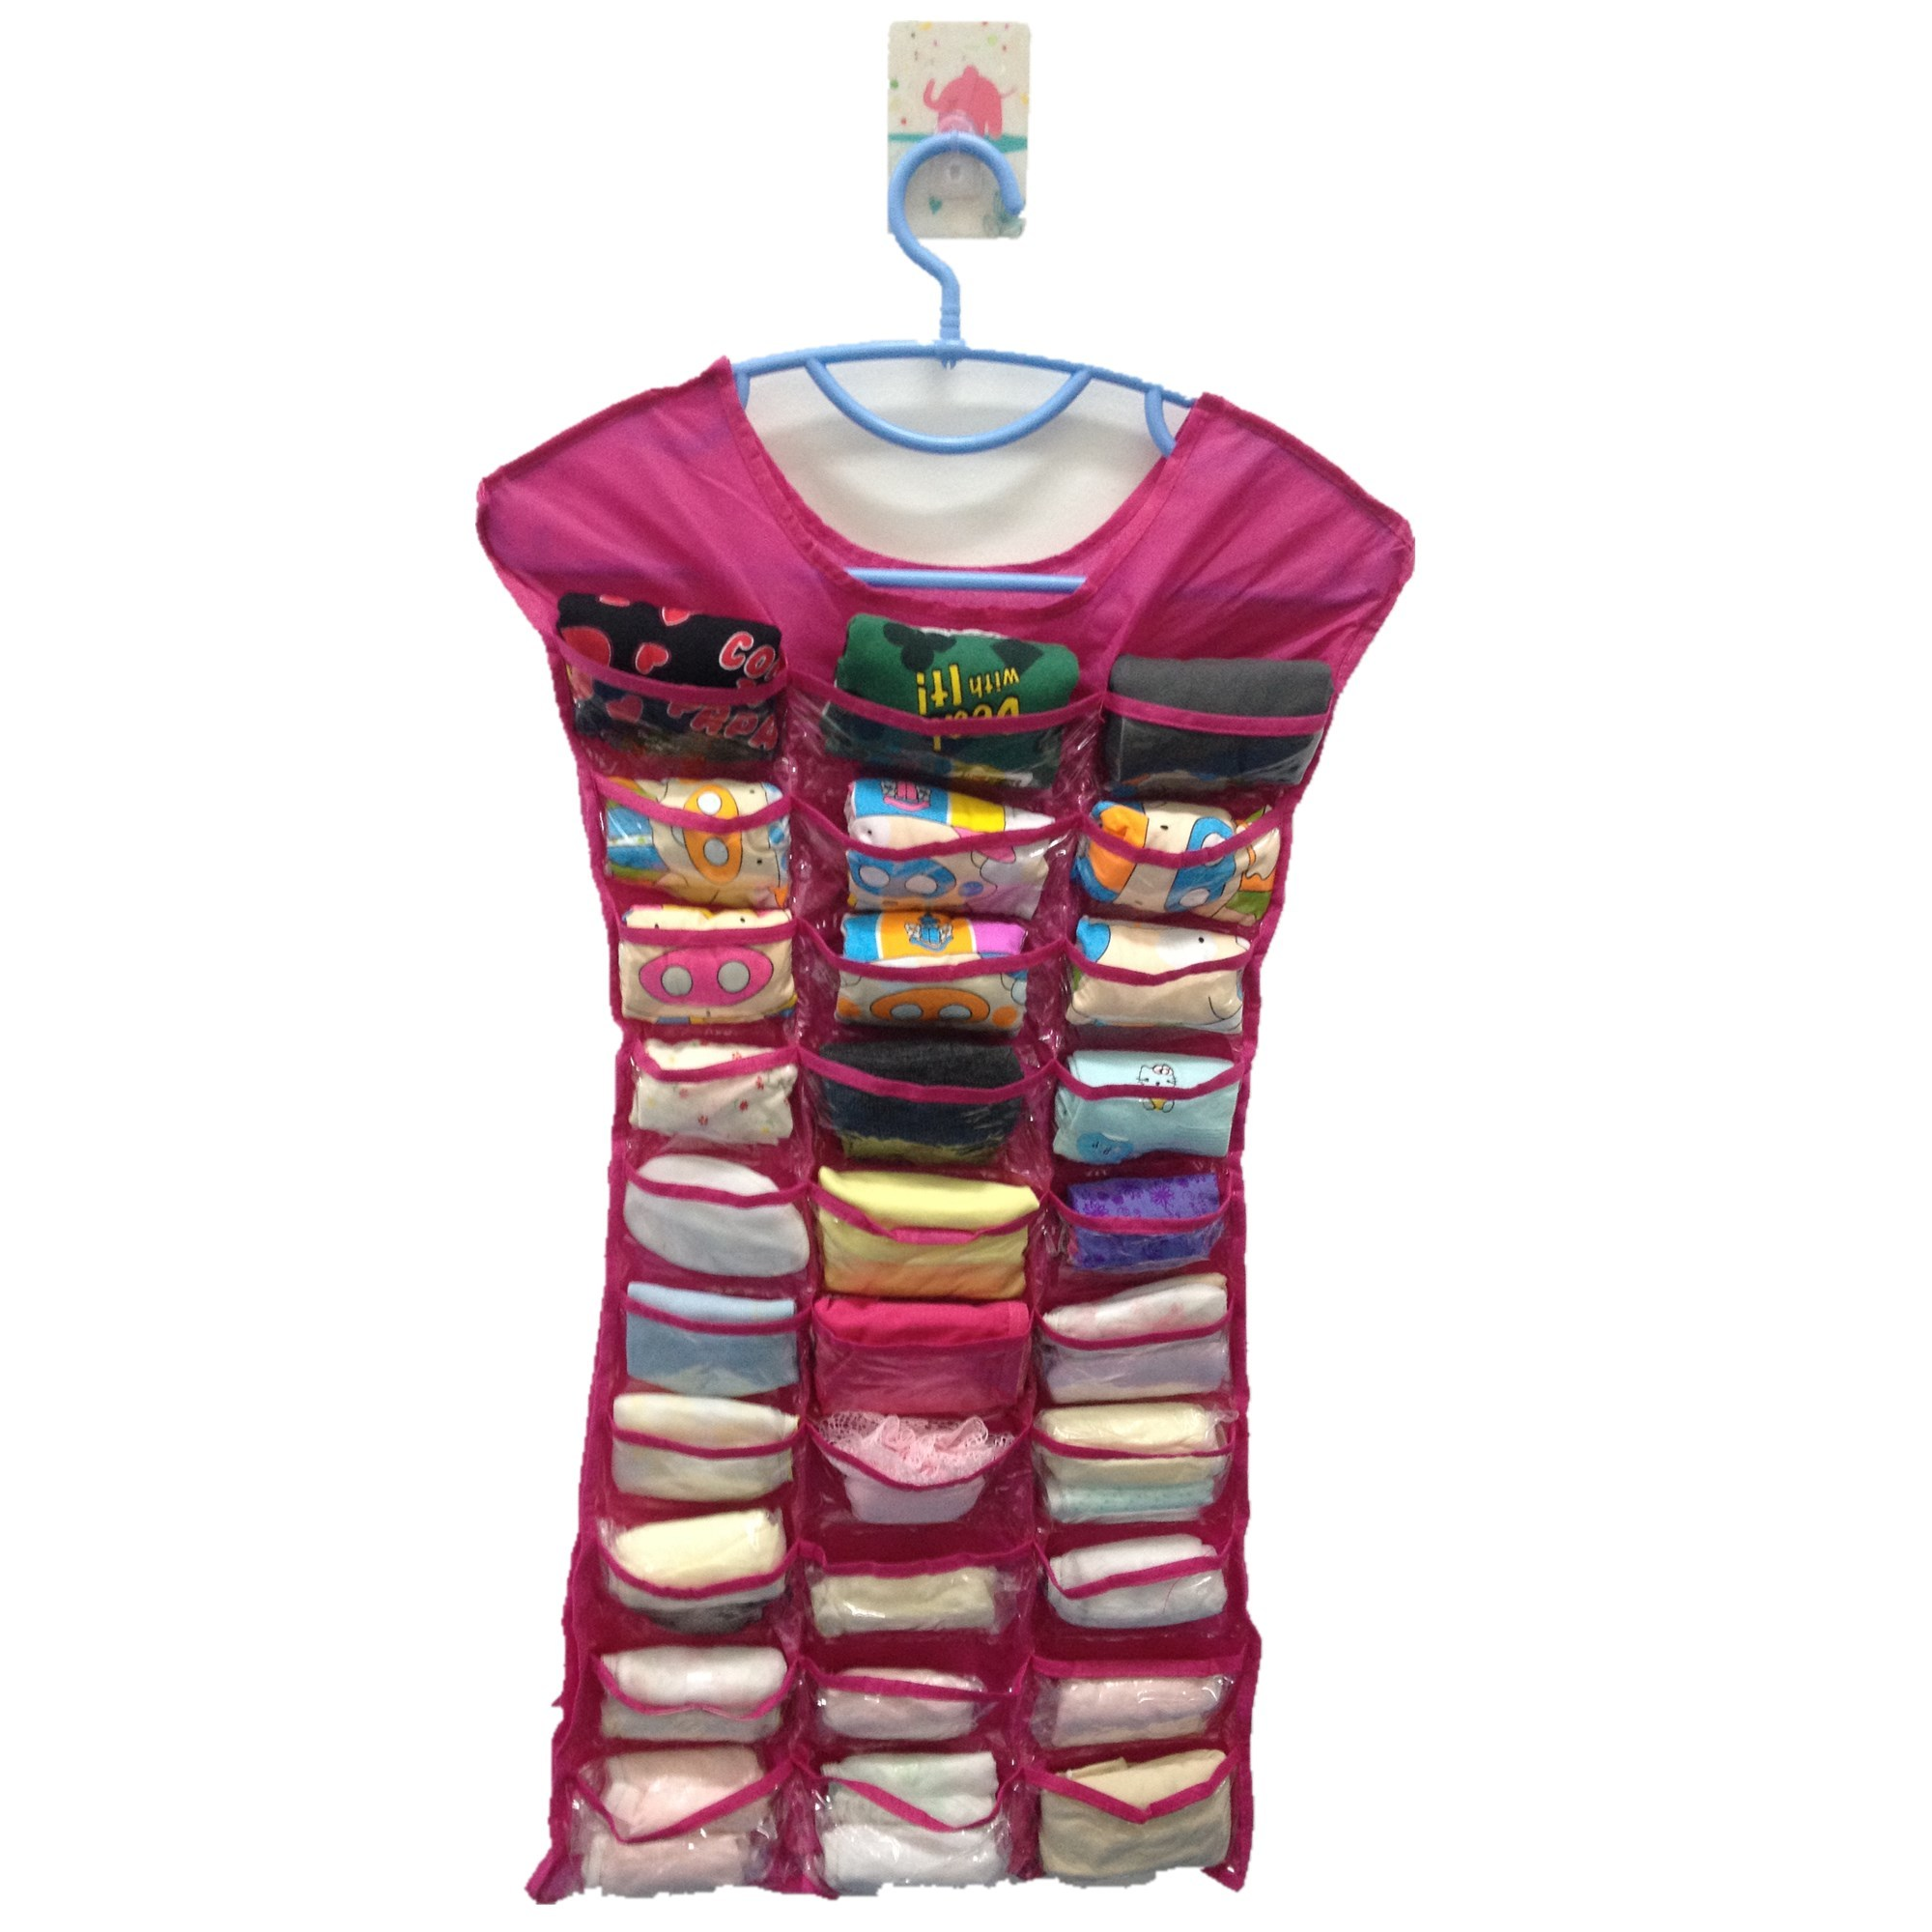 Hanging Necklace Organizer Dress Hanging Jewelry Organizer 30 Pocket Double Sided Pink